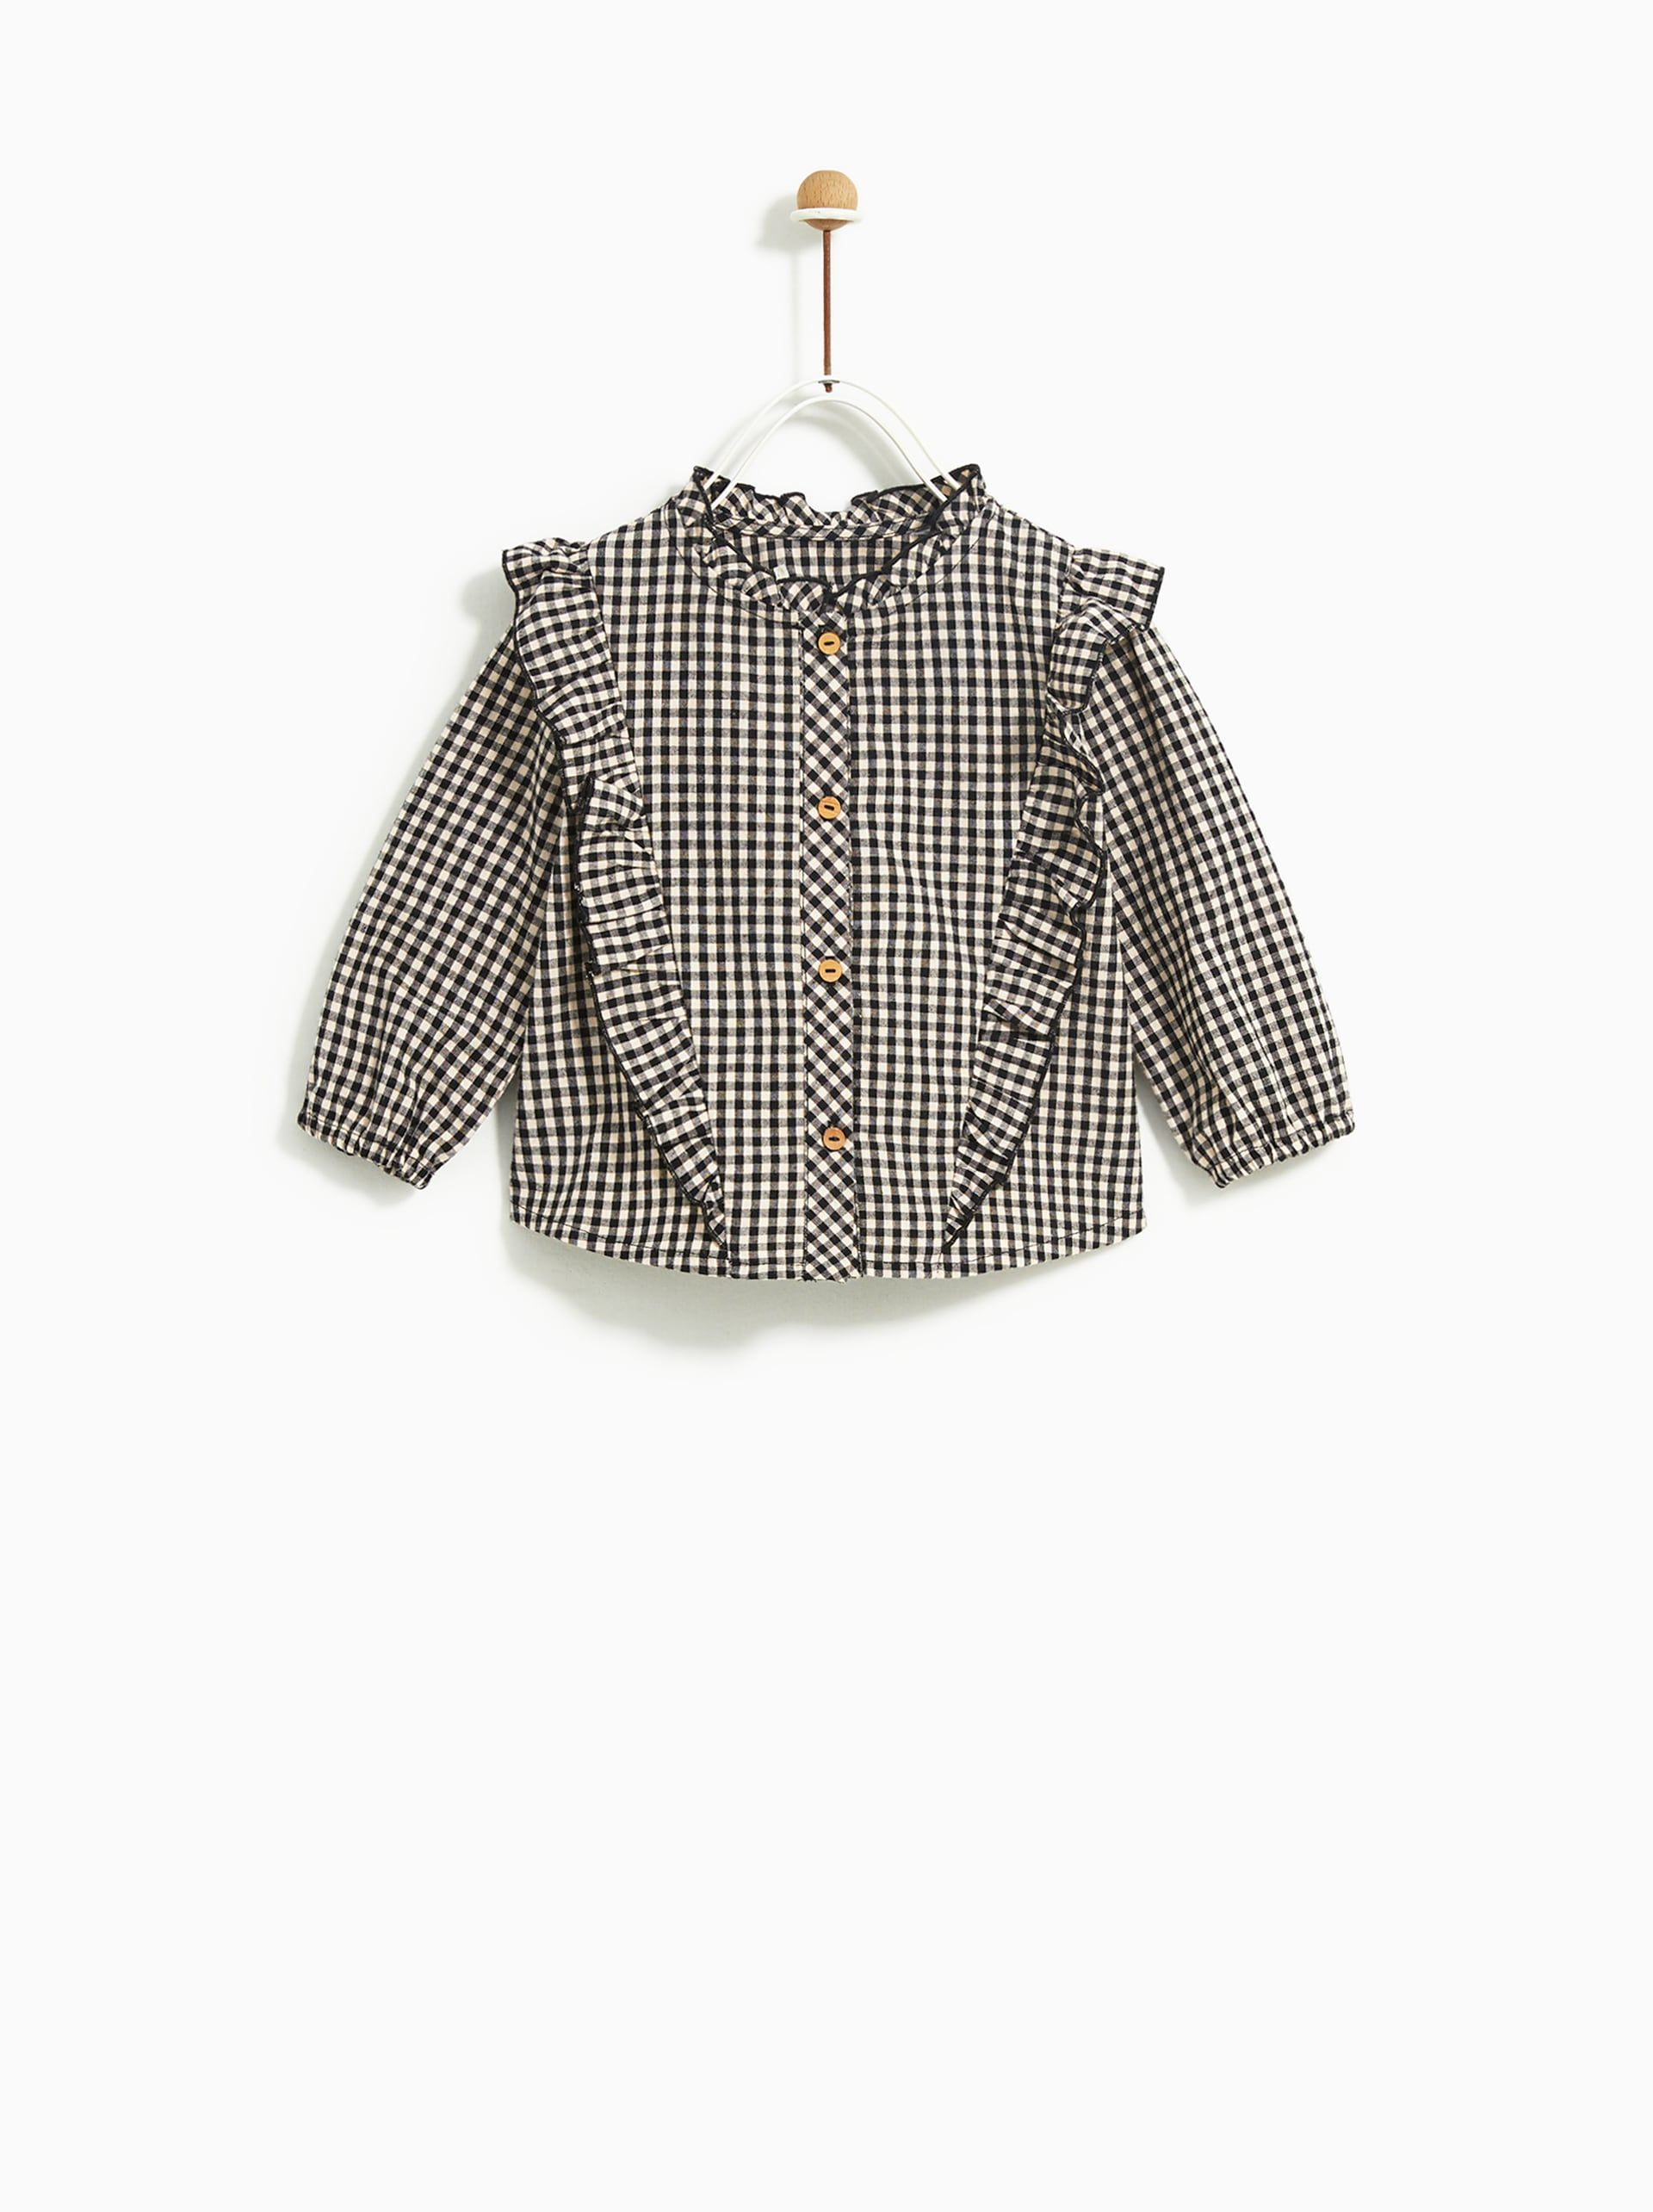 Plaid Shirt Kids Fashion Girl Outfits Baby Clothes Patterns